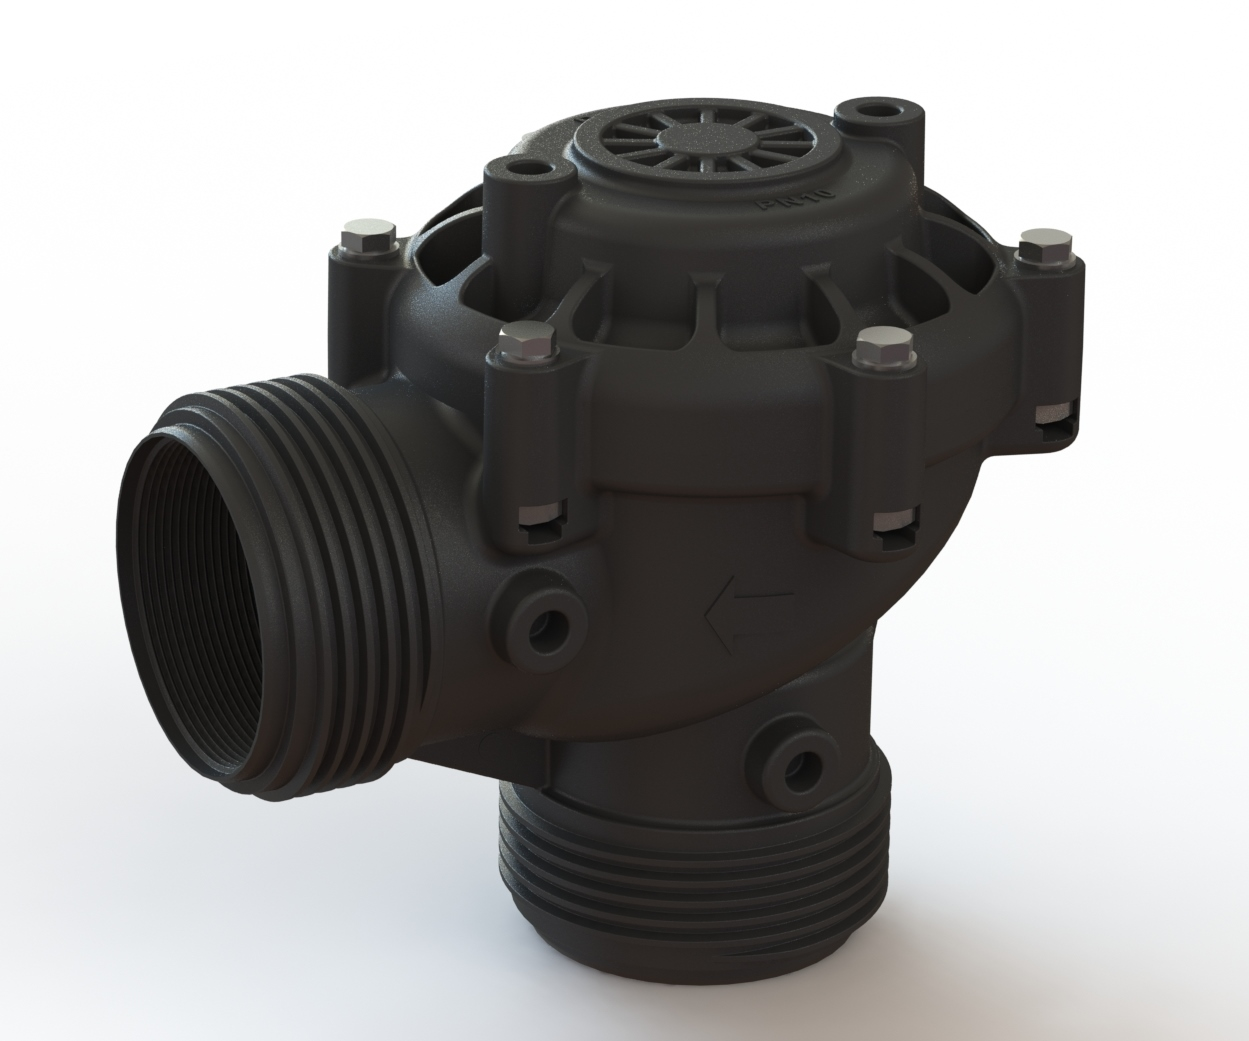 Dorot's New Agricultural Hydraulic Valve : 80A Angle Valve